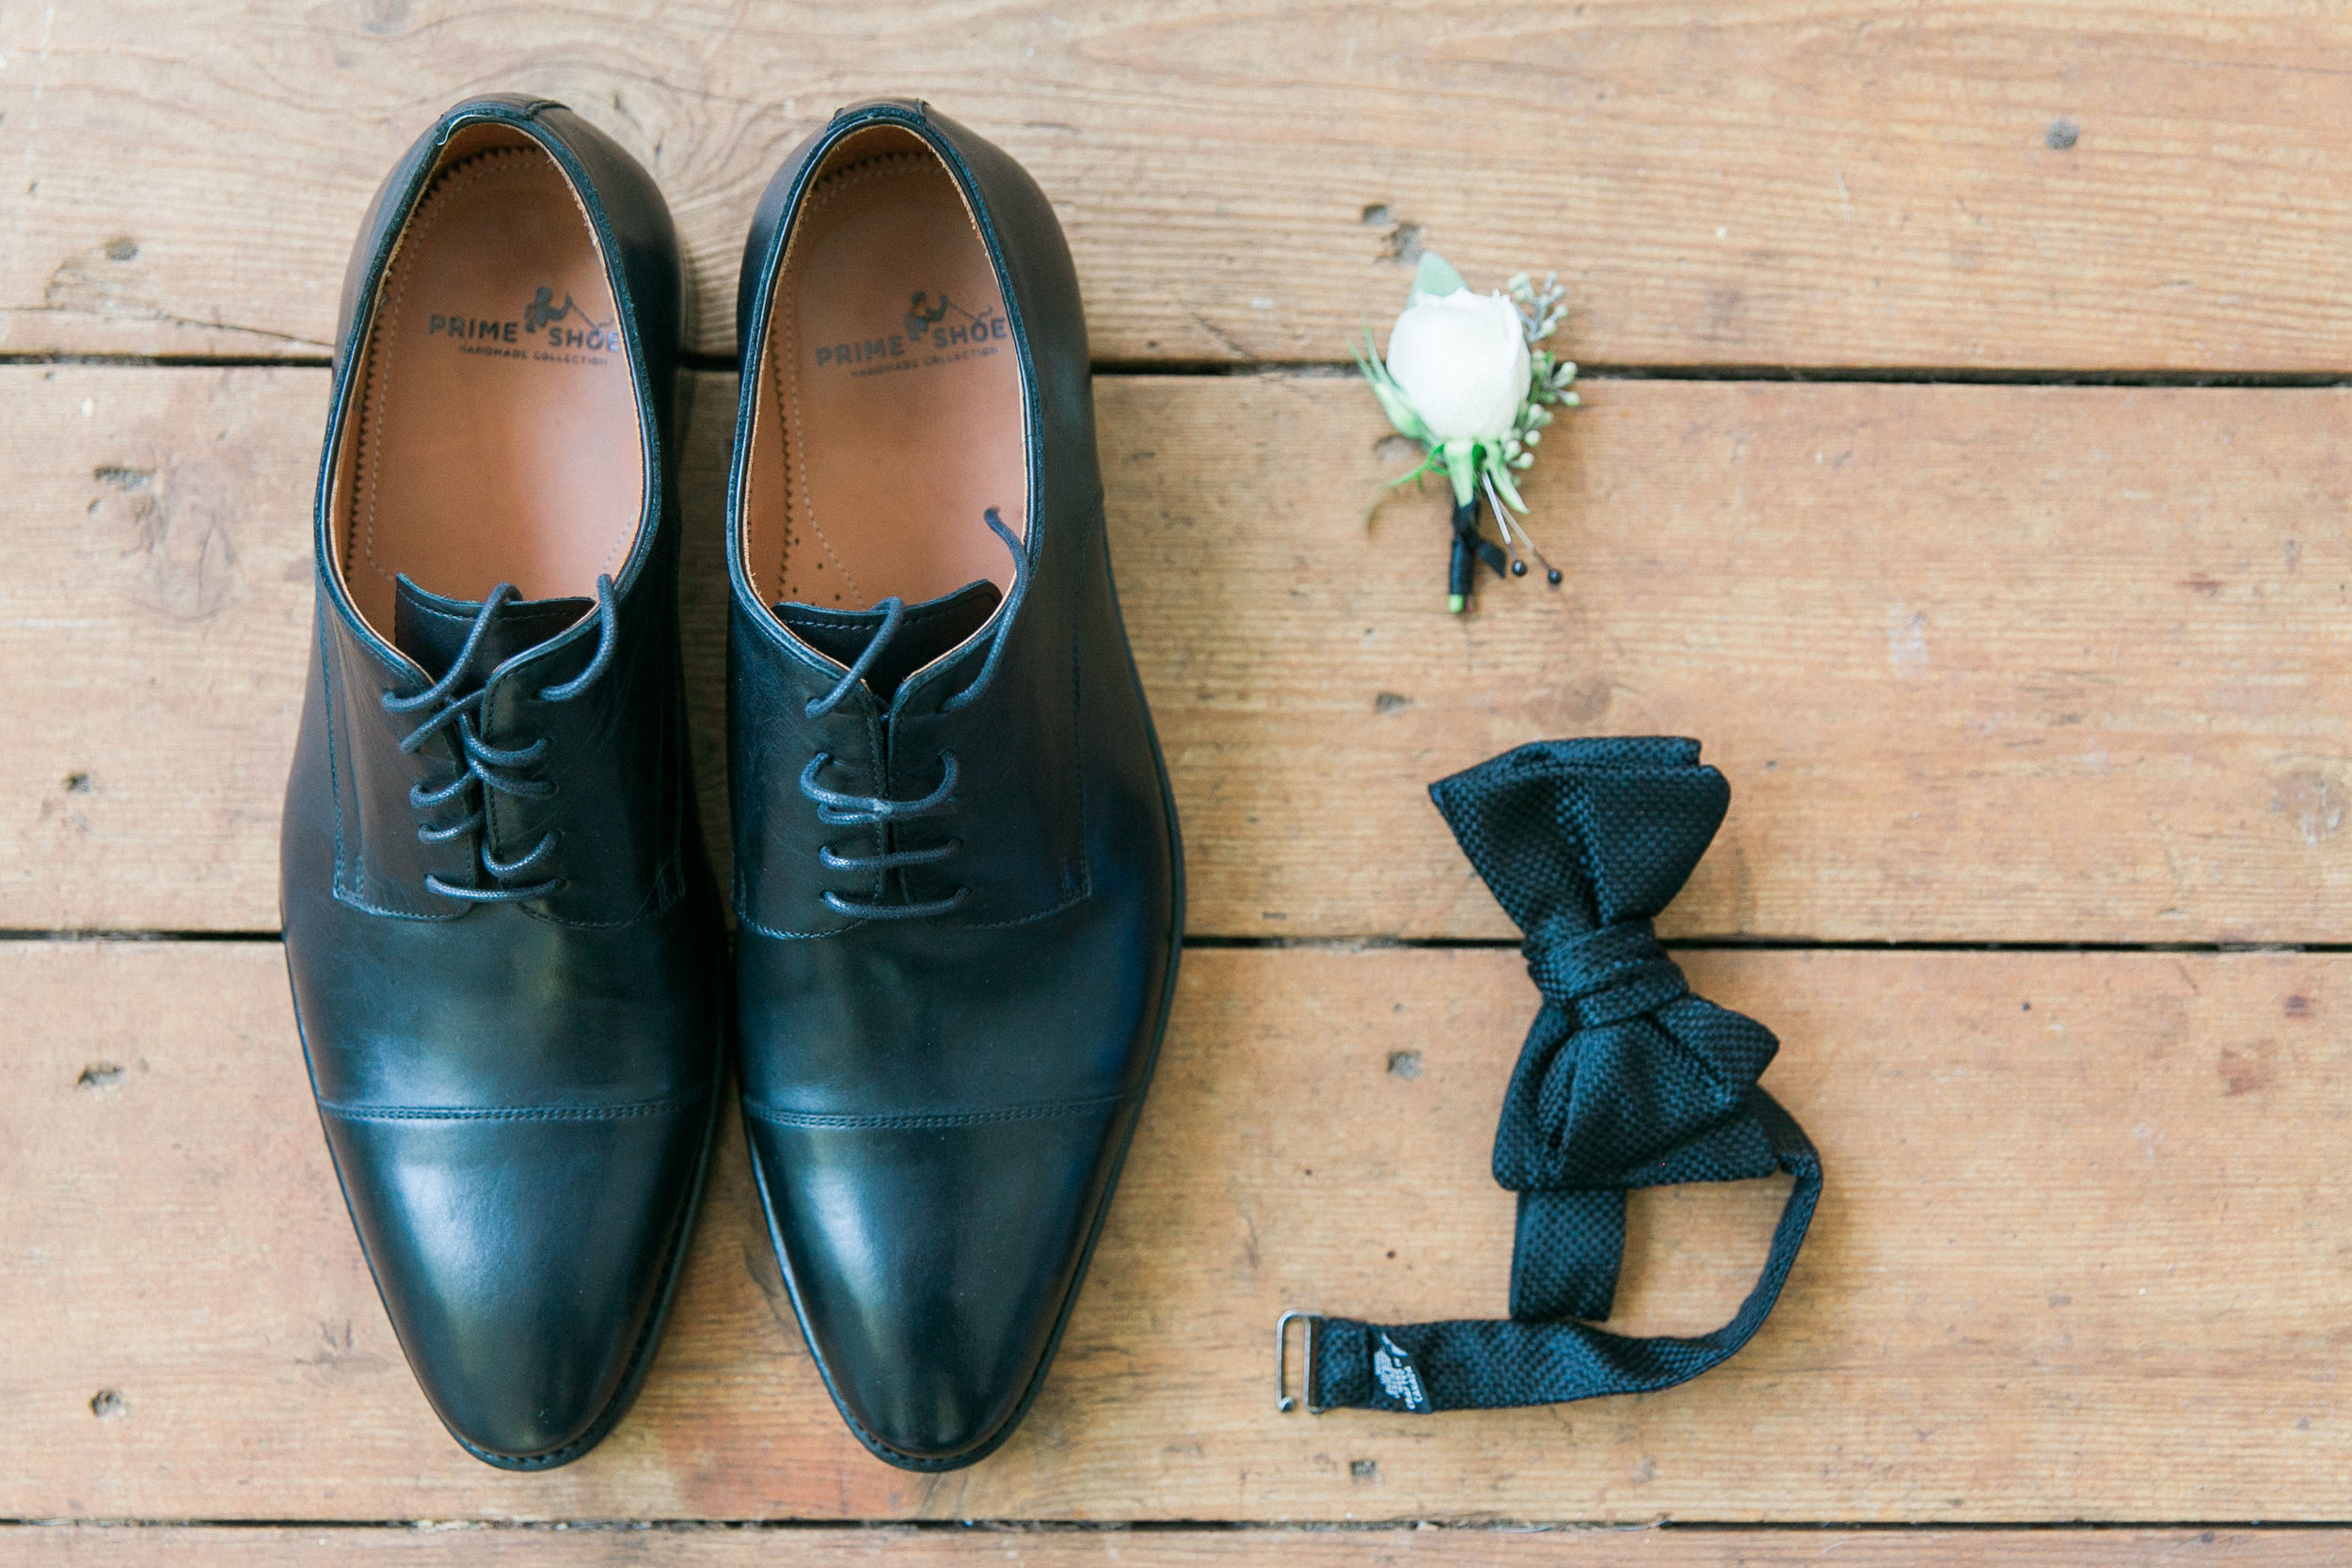 Groom's shoes, bow tie and boutiennere